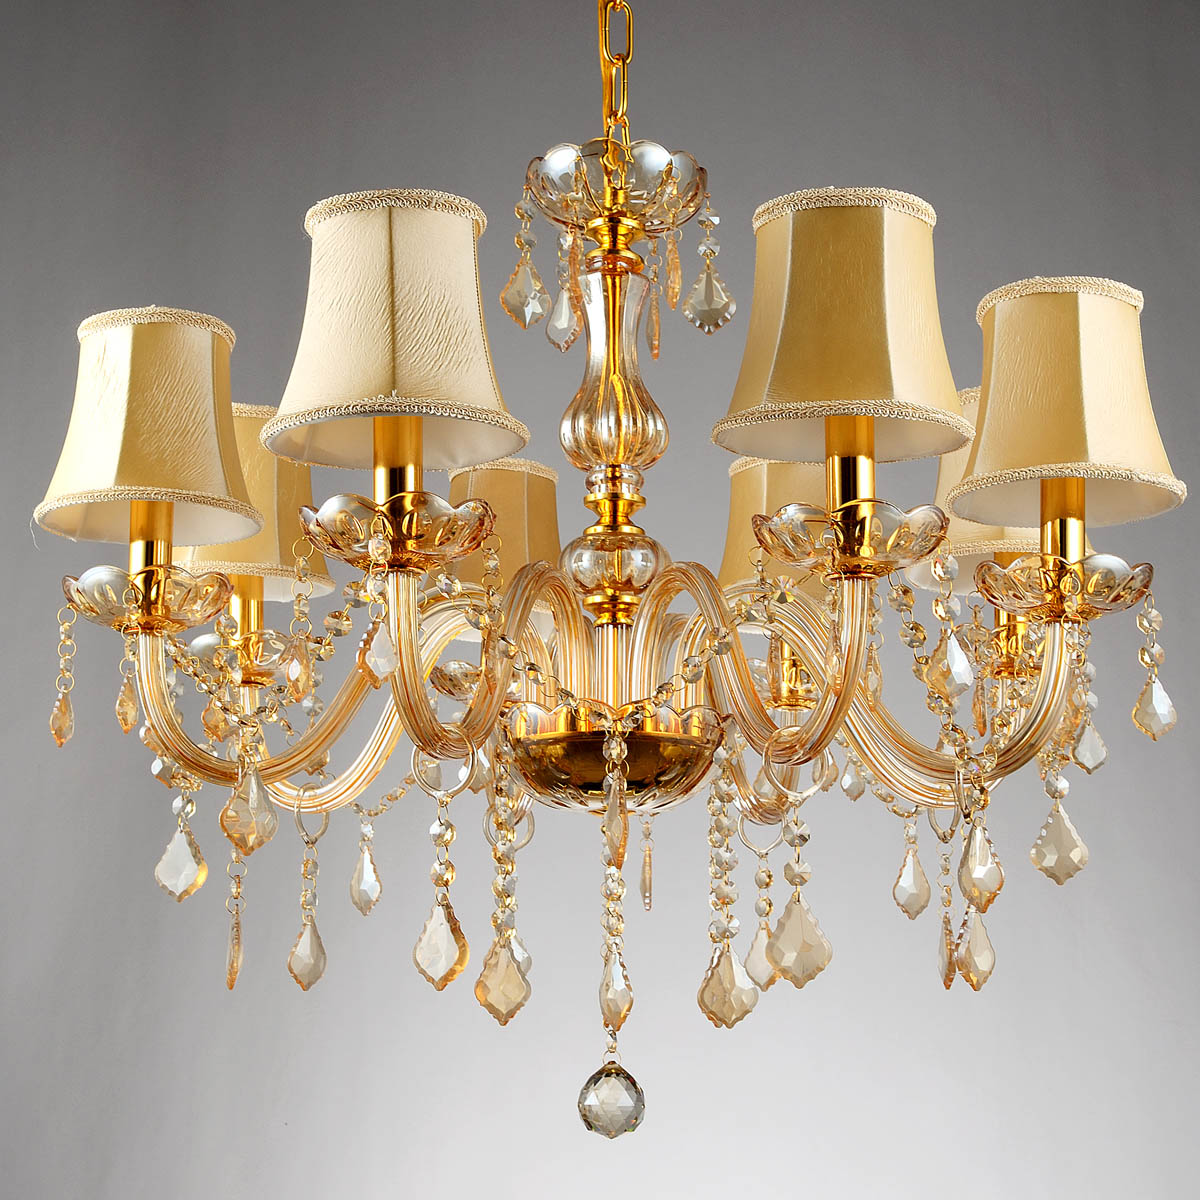 Free ship 6/8 Arms Fashion crystal chandelier lighting Bedroom pendant Chandelier champagne color gold crystal lighting lamps